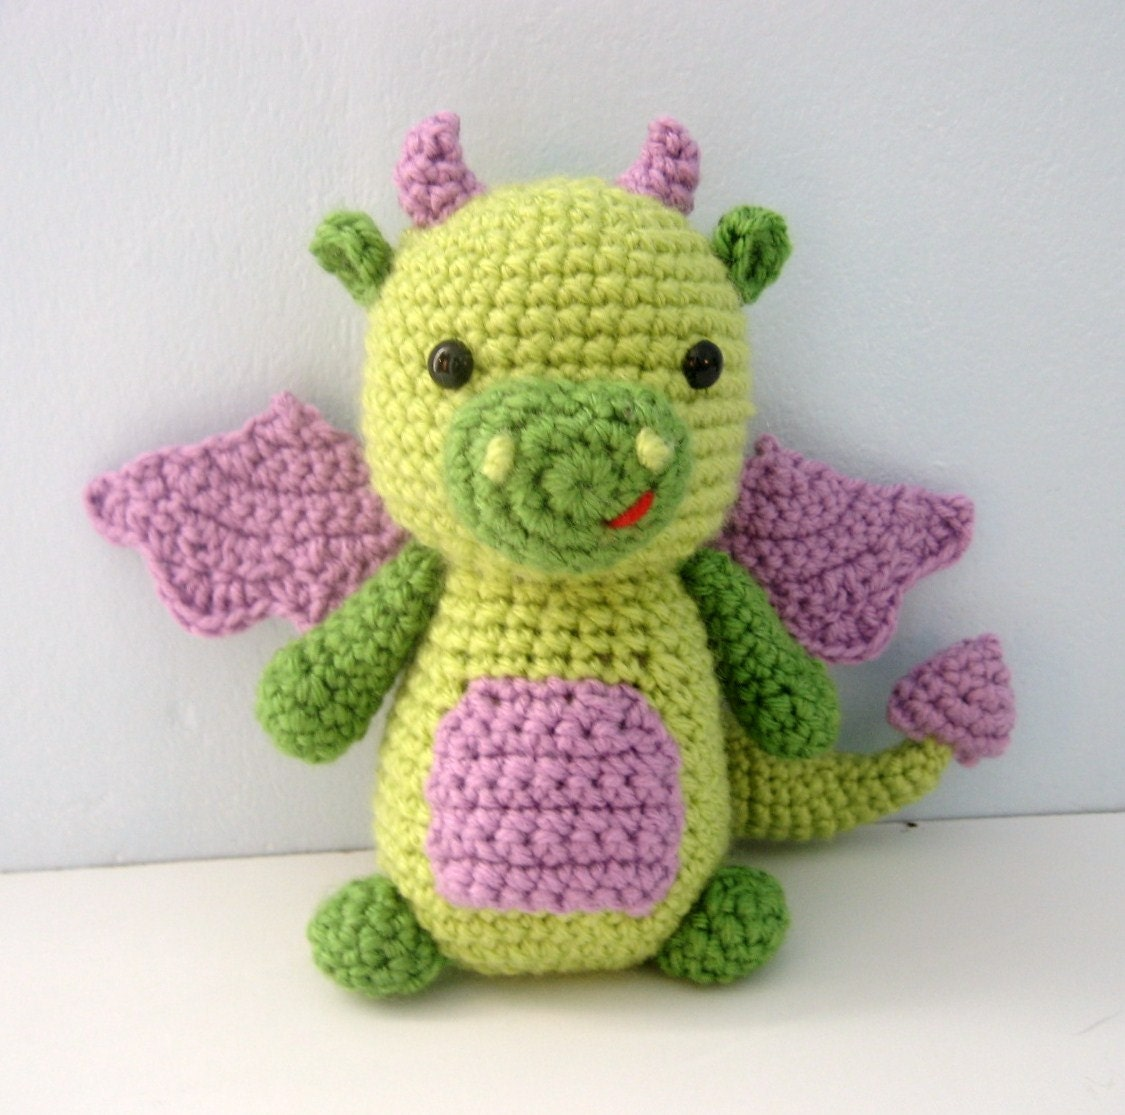 Large Amigurumi Pattern Free : Amigurumi Crochet Dragon Pattern Digital Download